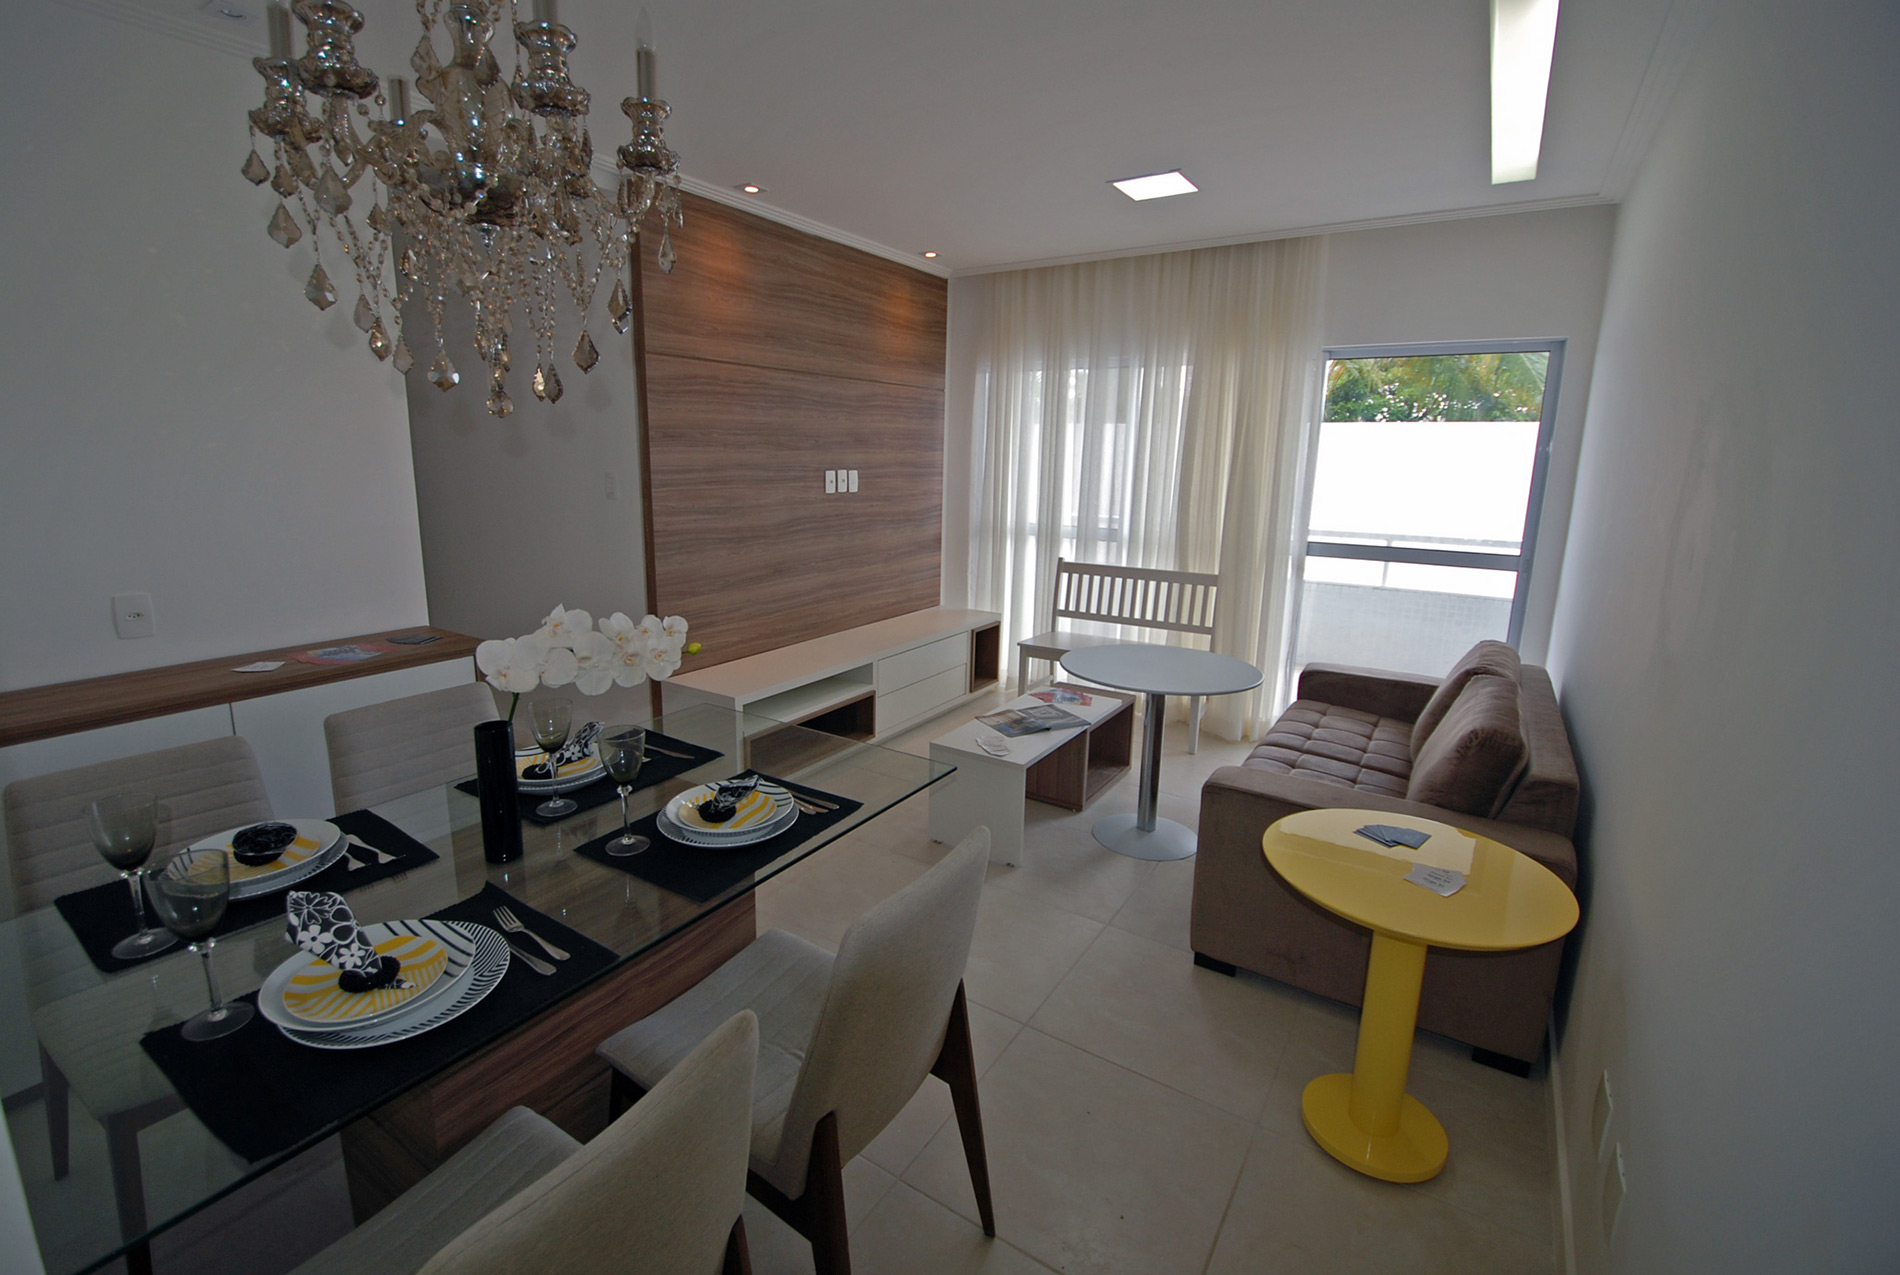 Apartment for sale with great location in Jardim Aeroporto